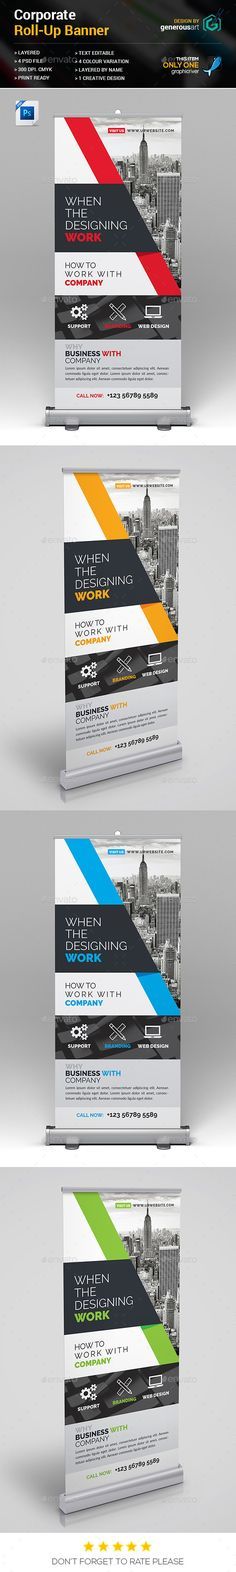 """Roll-Up Banner by generousart File Information: Easy Customizable and EditableSize 30""""x70"""" in with bleedCMYK ColorDesign in 300 DPI ResolutionPrint Ready Format"""